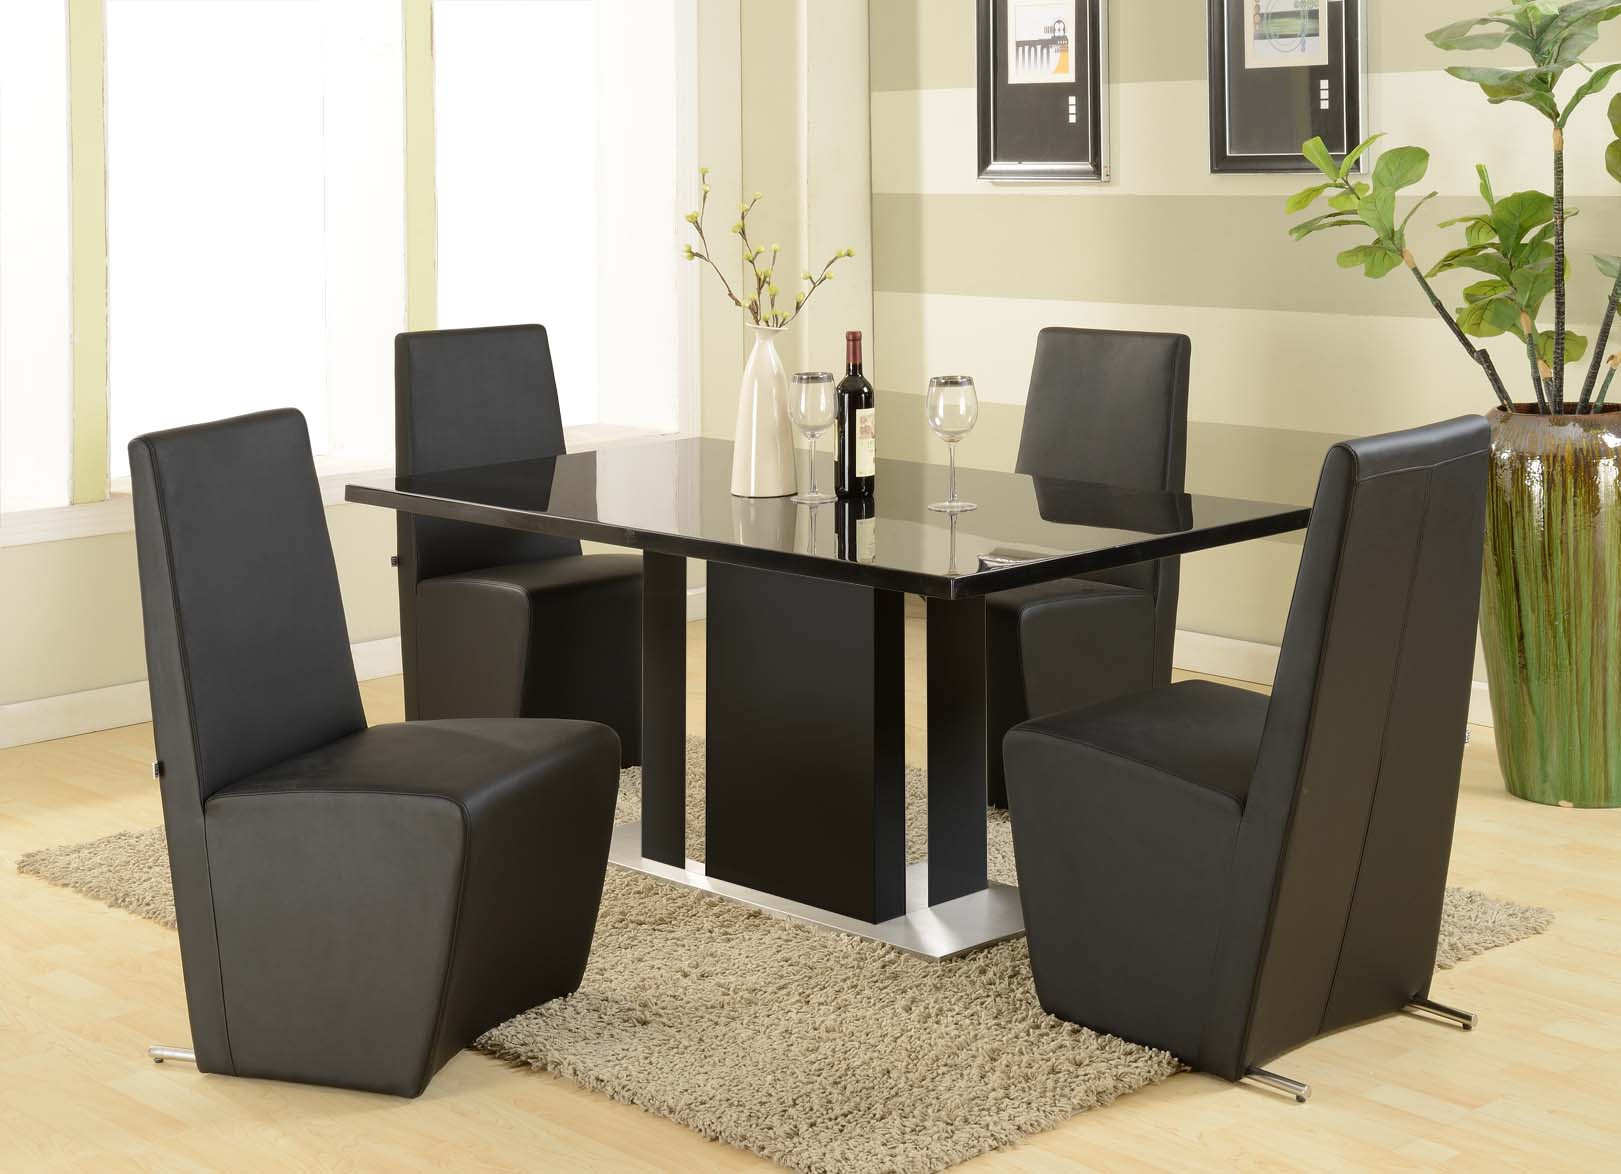 Best ideas about Modern Dining Table Set . Save or Pin Buying Modern Dining Sets Tips and Advices Traba Homes Now.